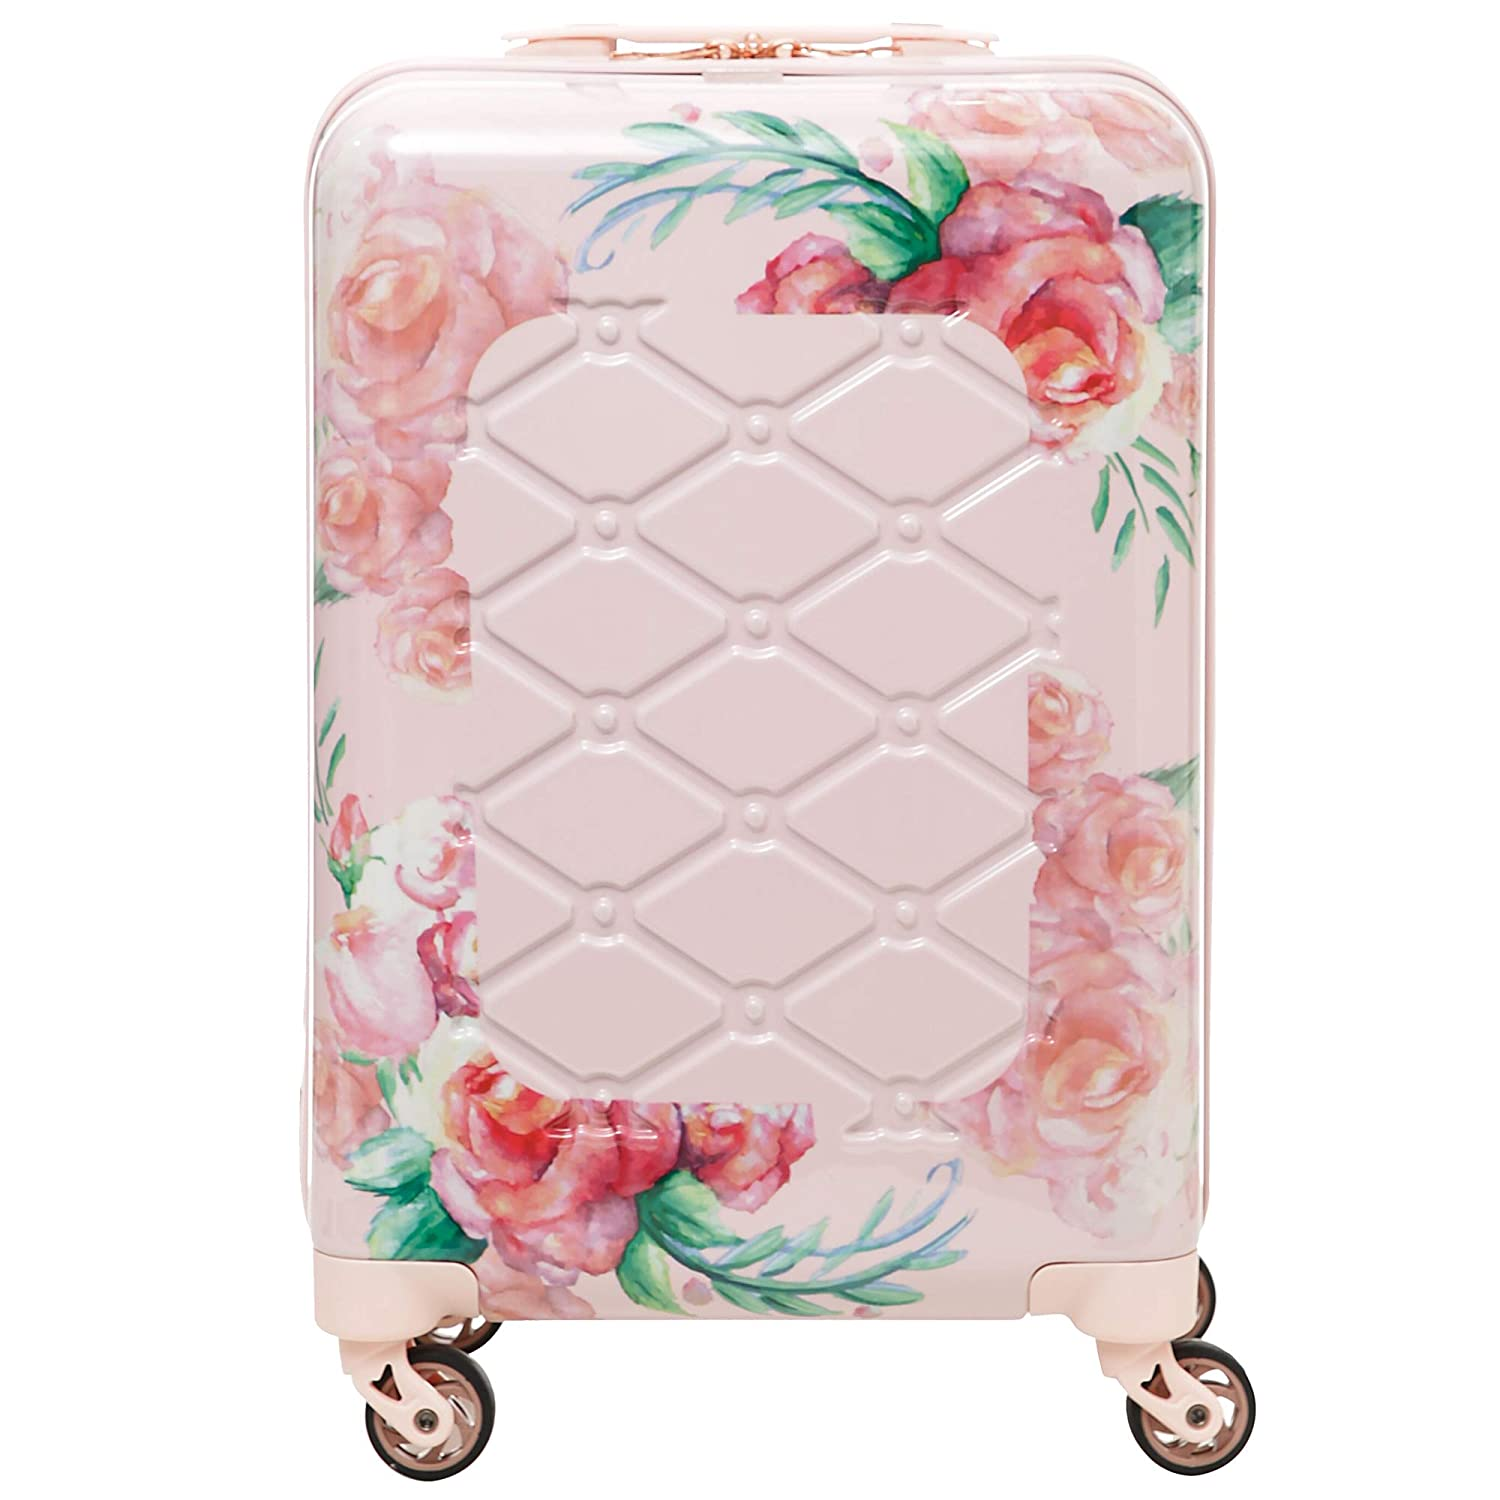 Aerolite Premium Hard Shell 4 Wheel Carry On Hand Cabin Luggage Suitcase, Approved for Virtually All Major Airlines, Rose Blush